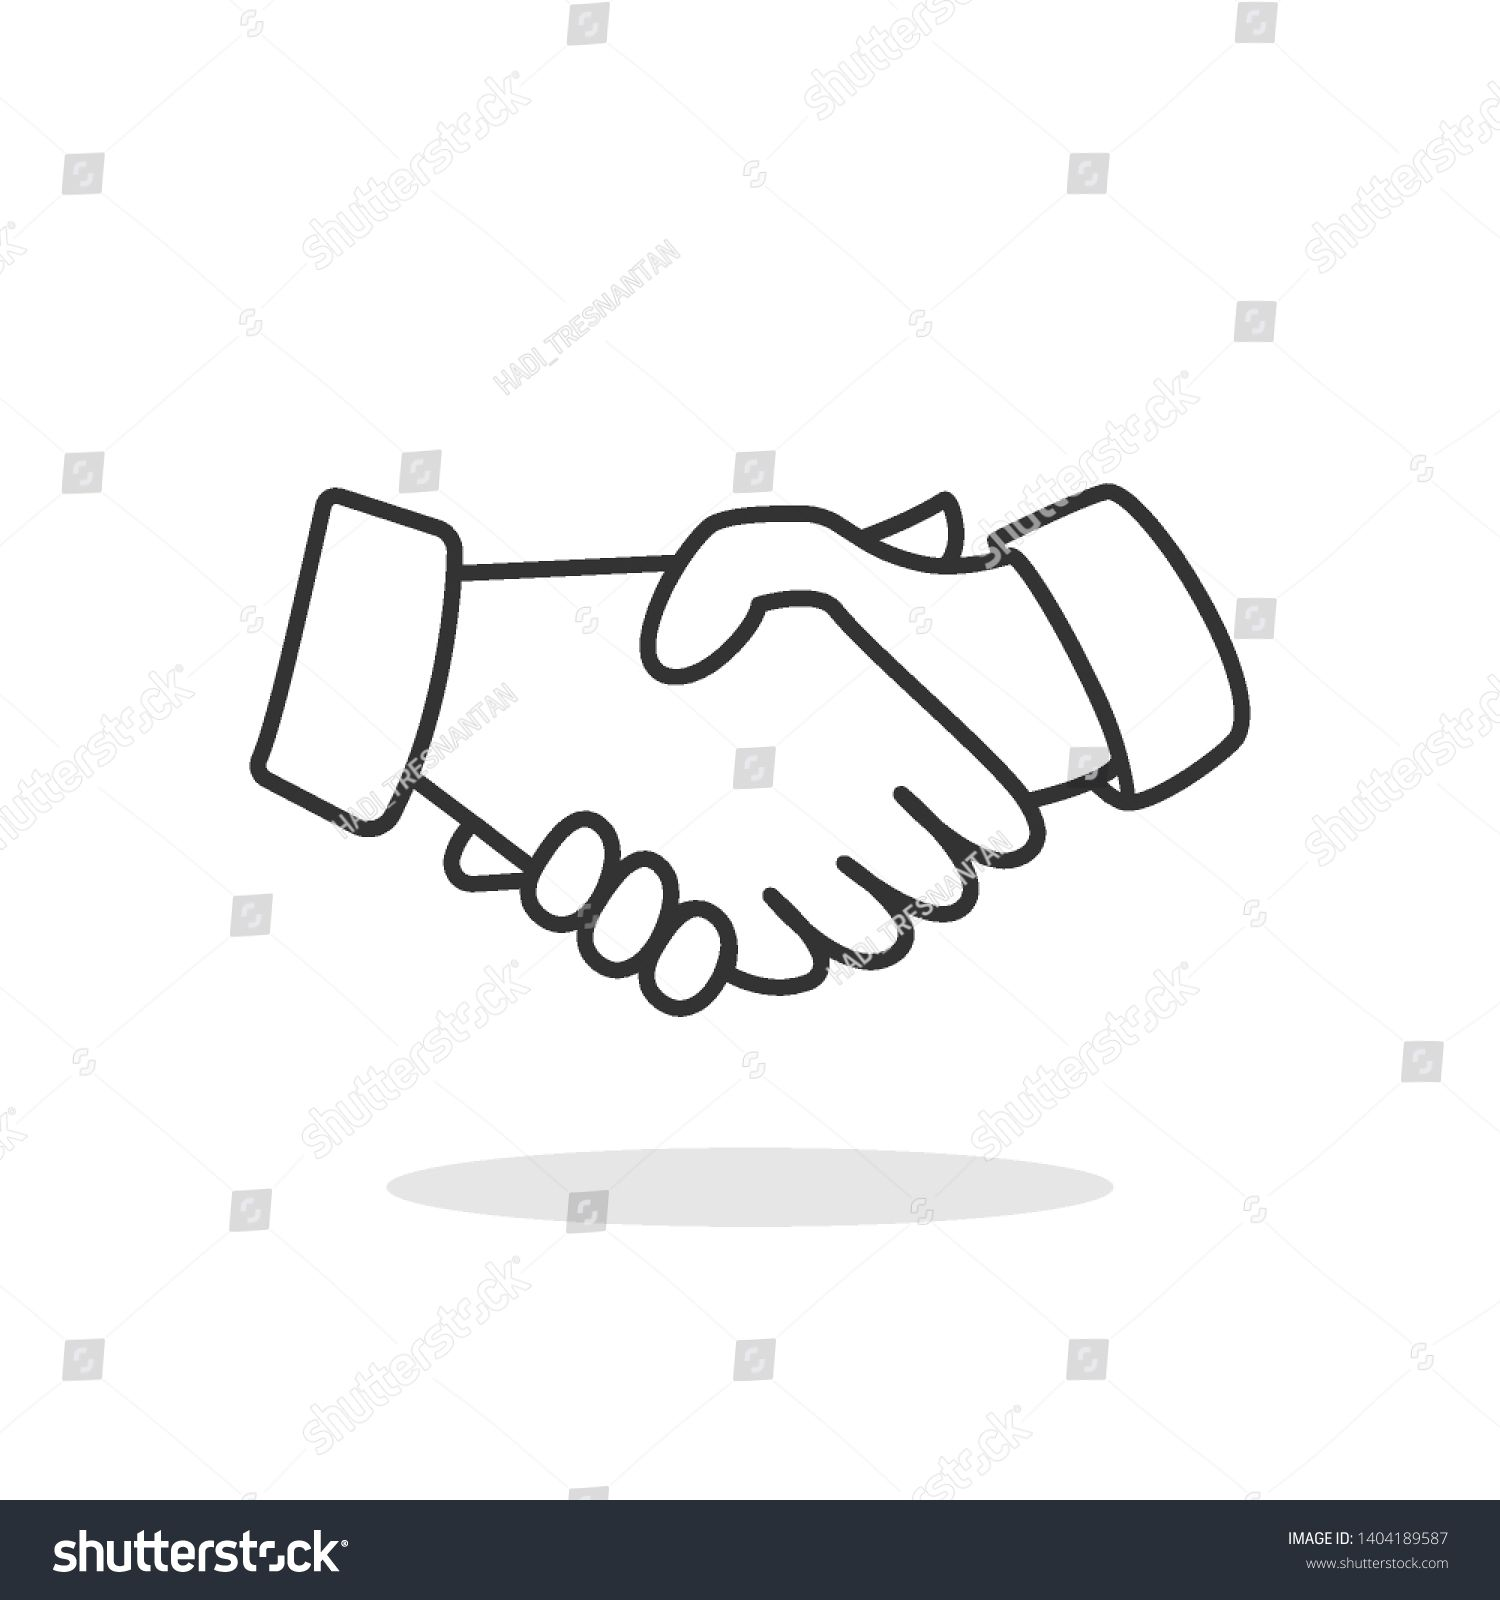 Nhandshake Icon Deal Agreement Or Relationship Illustration As A Simple Vector Sign Illustration Vector Relationship